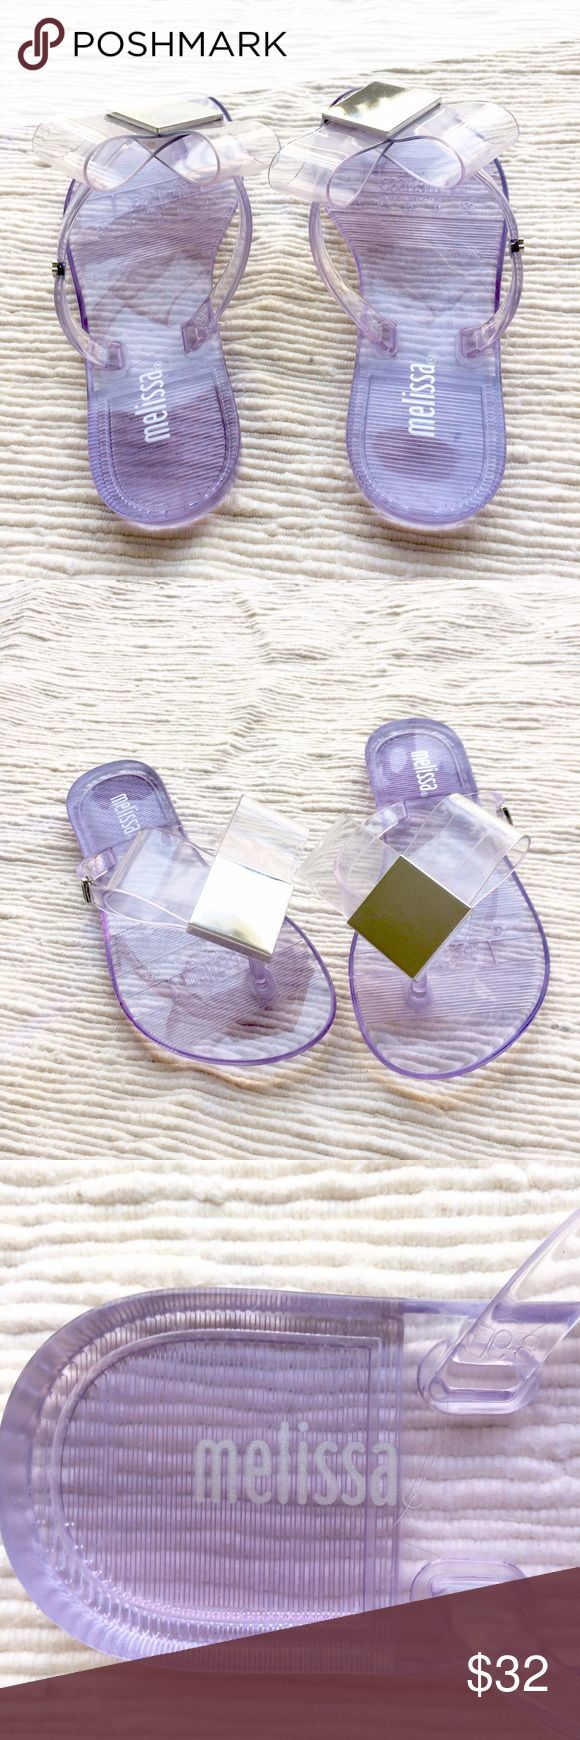 Mini Melissa flip flops New with no box or tags. Never worn however they do have a little scuff because they were never protected in a box. Clear with silver square buckle. Mini Melissa Shoes Sandals & Flip Flops